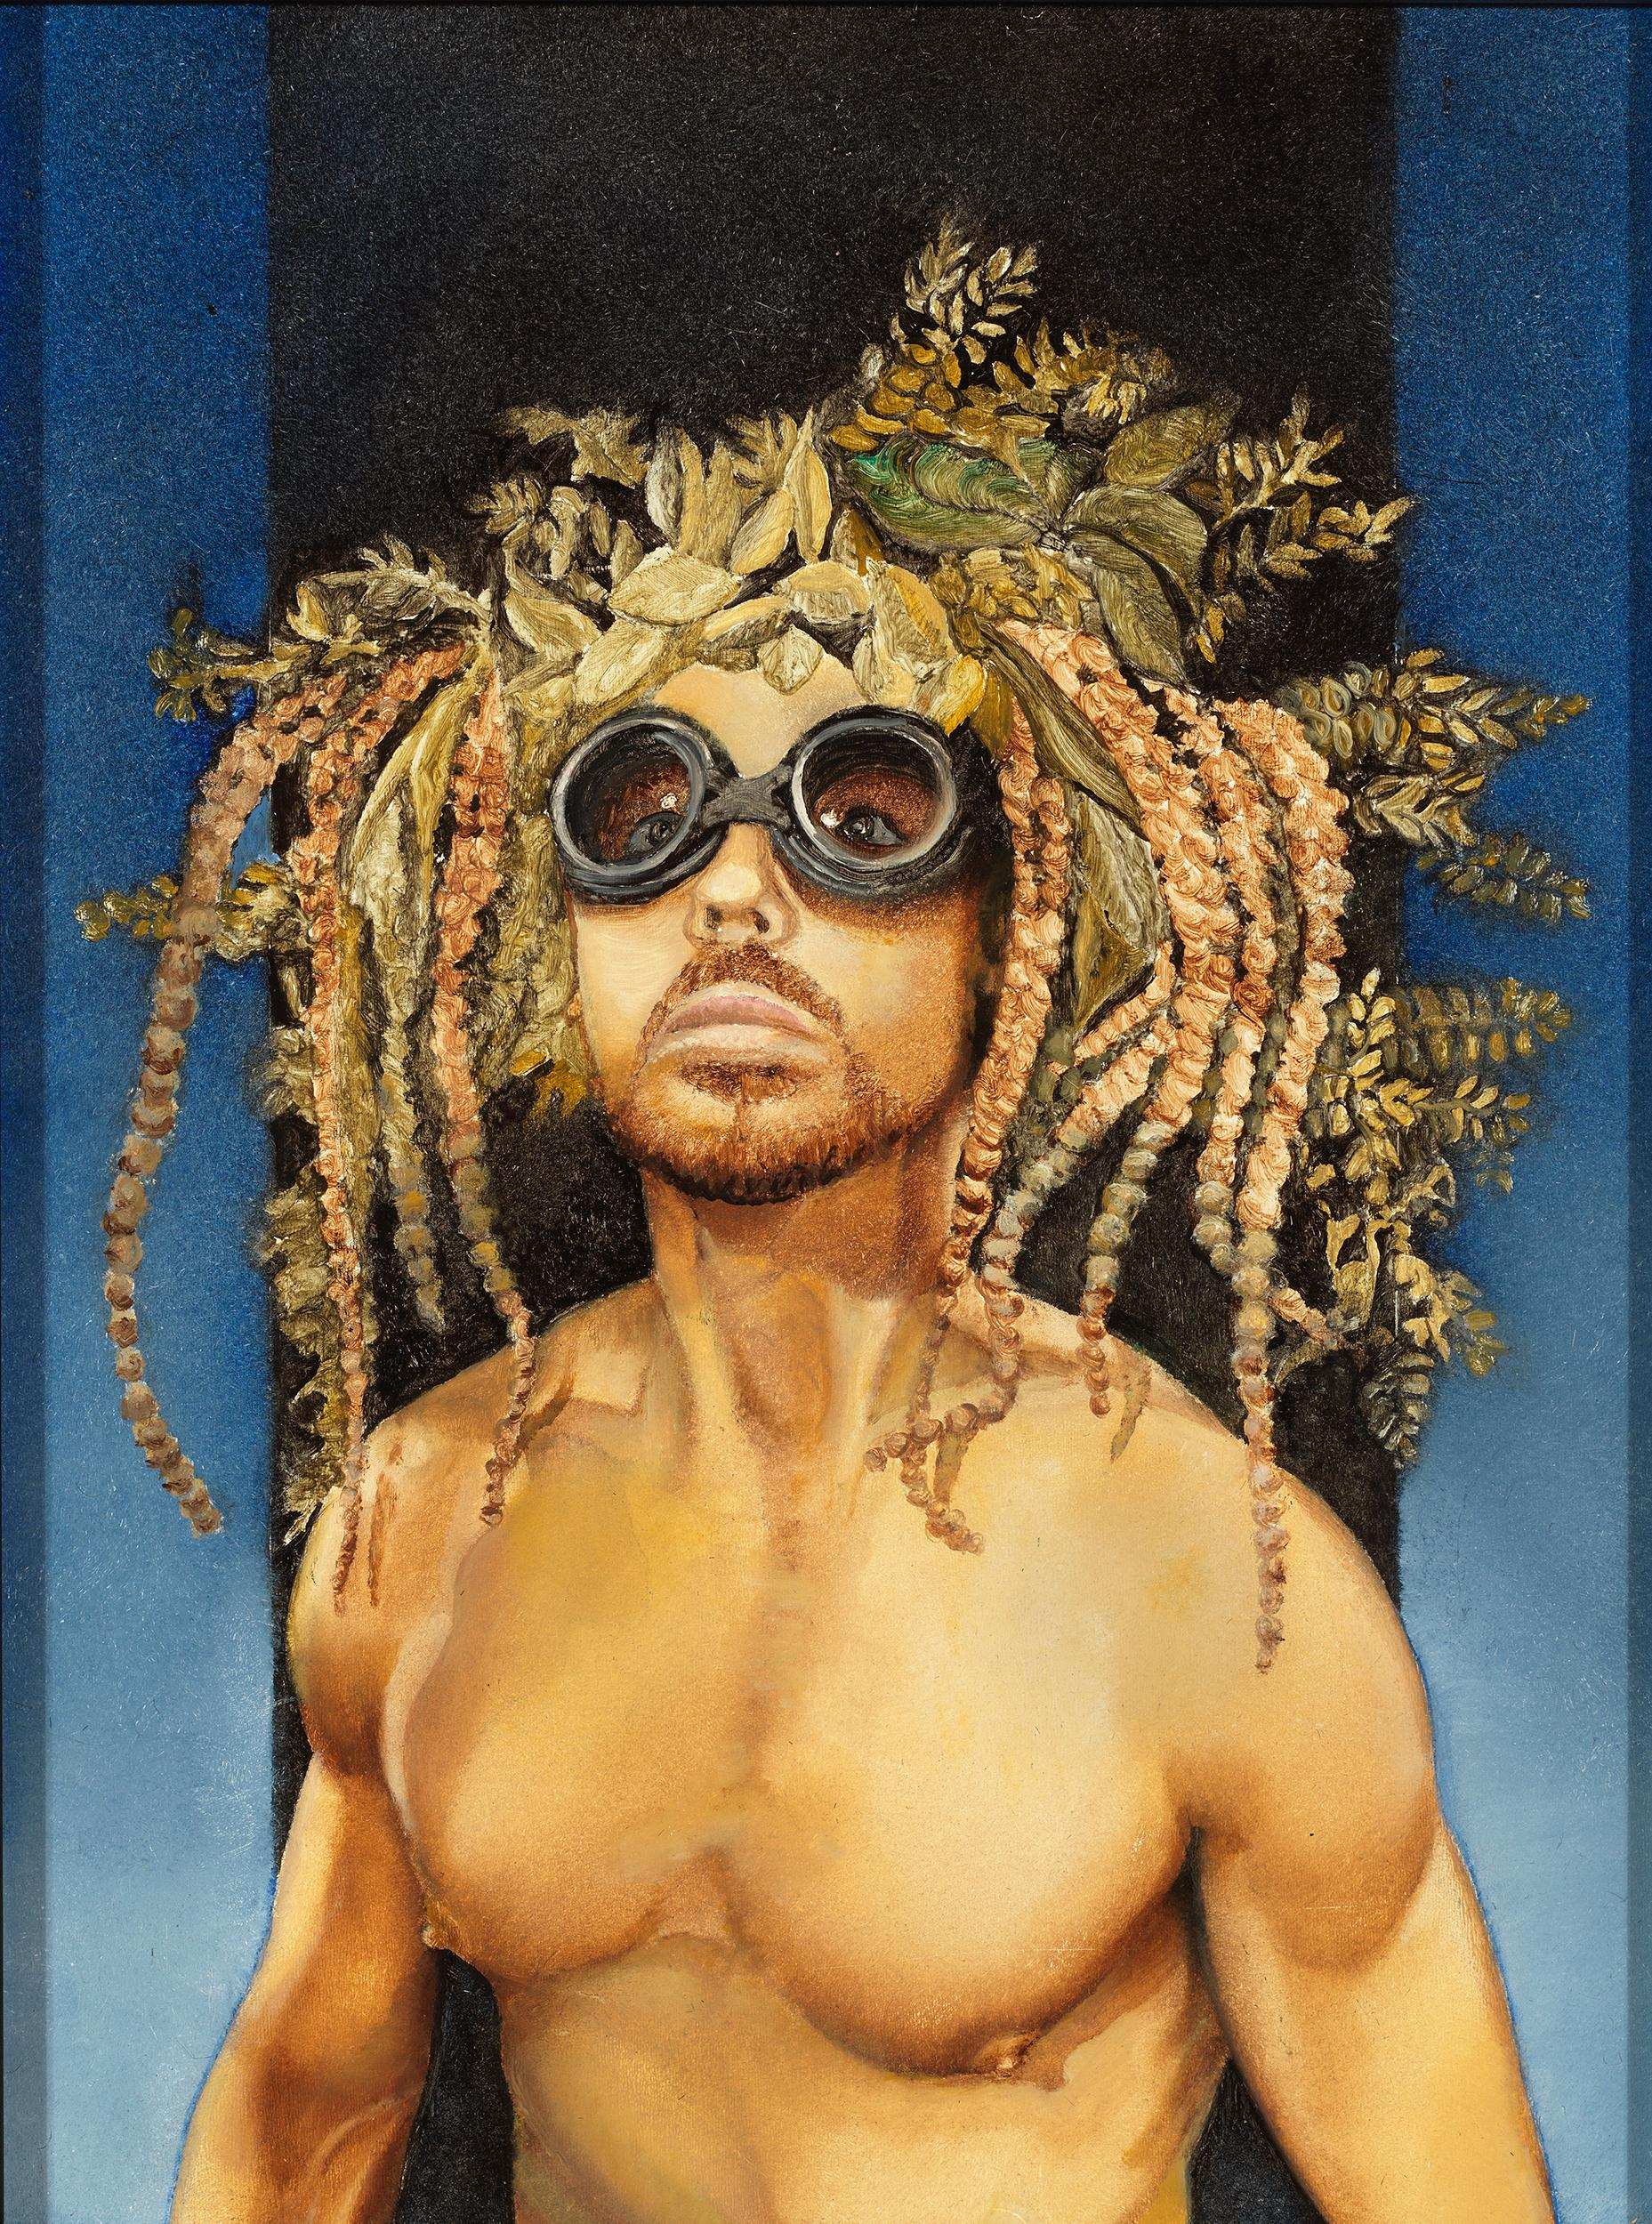 Survivalist - Nude Male Torso Painting on Blue by Richard Gibbons, Oil on Panel